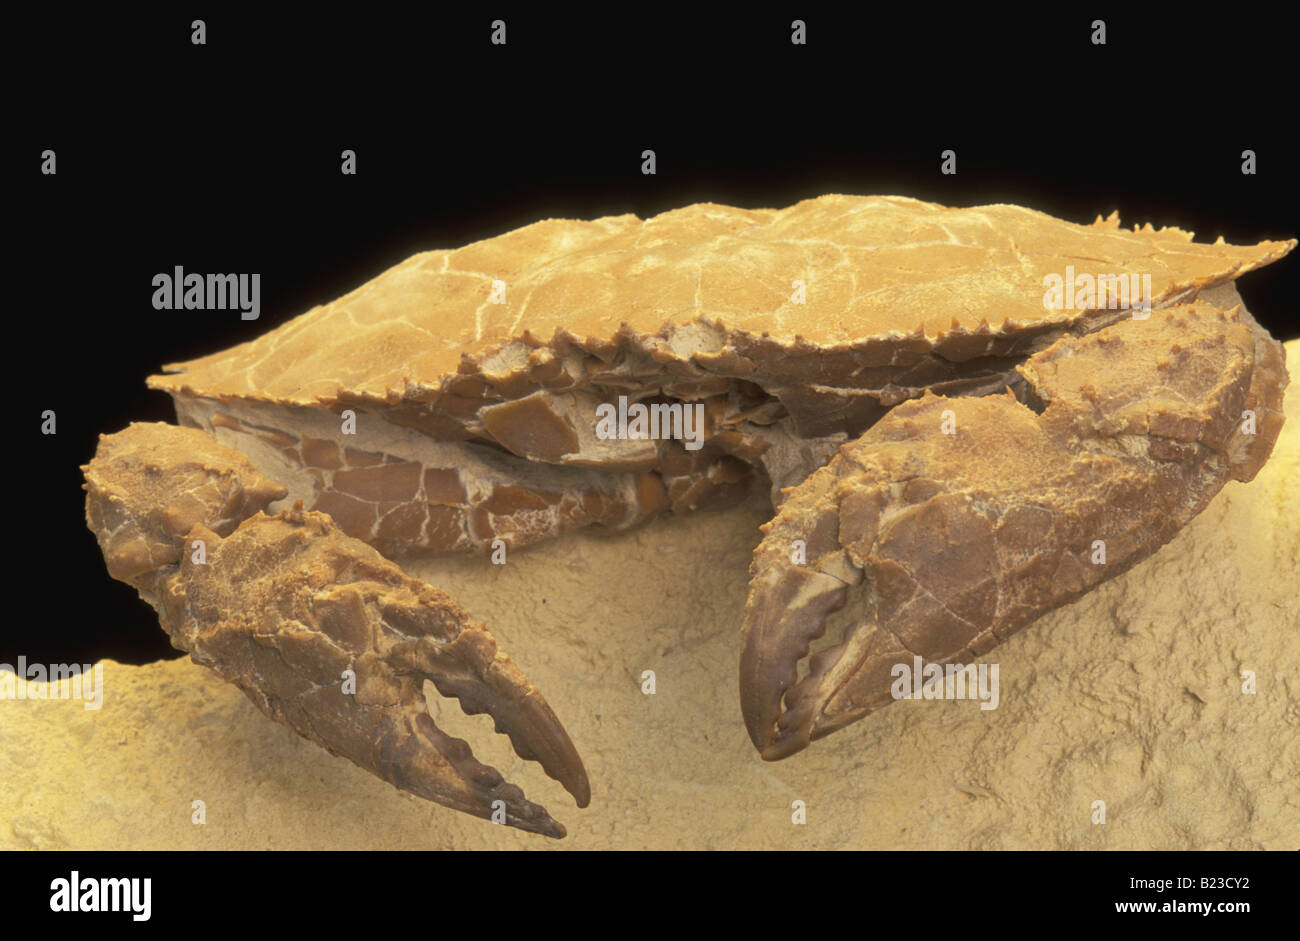 Fossil Crab - Stock Image